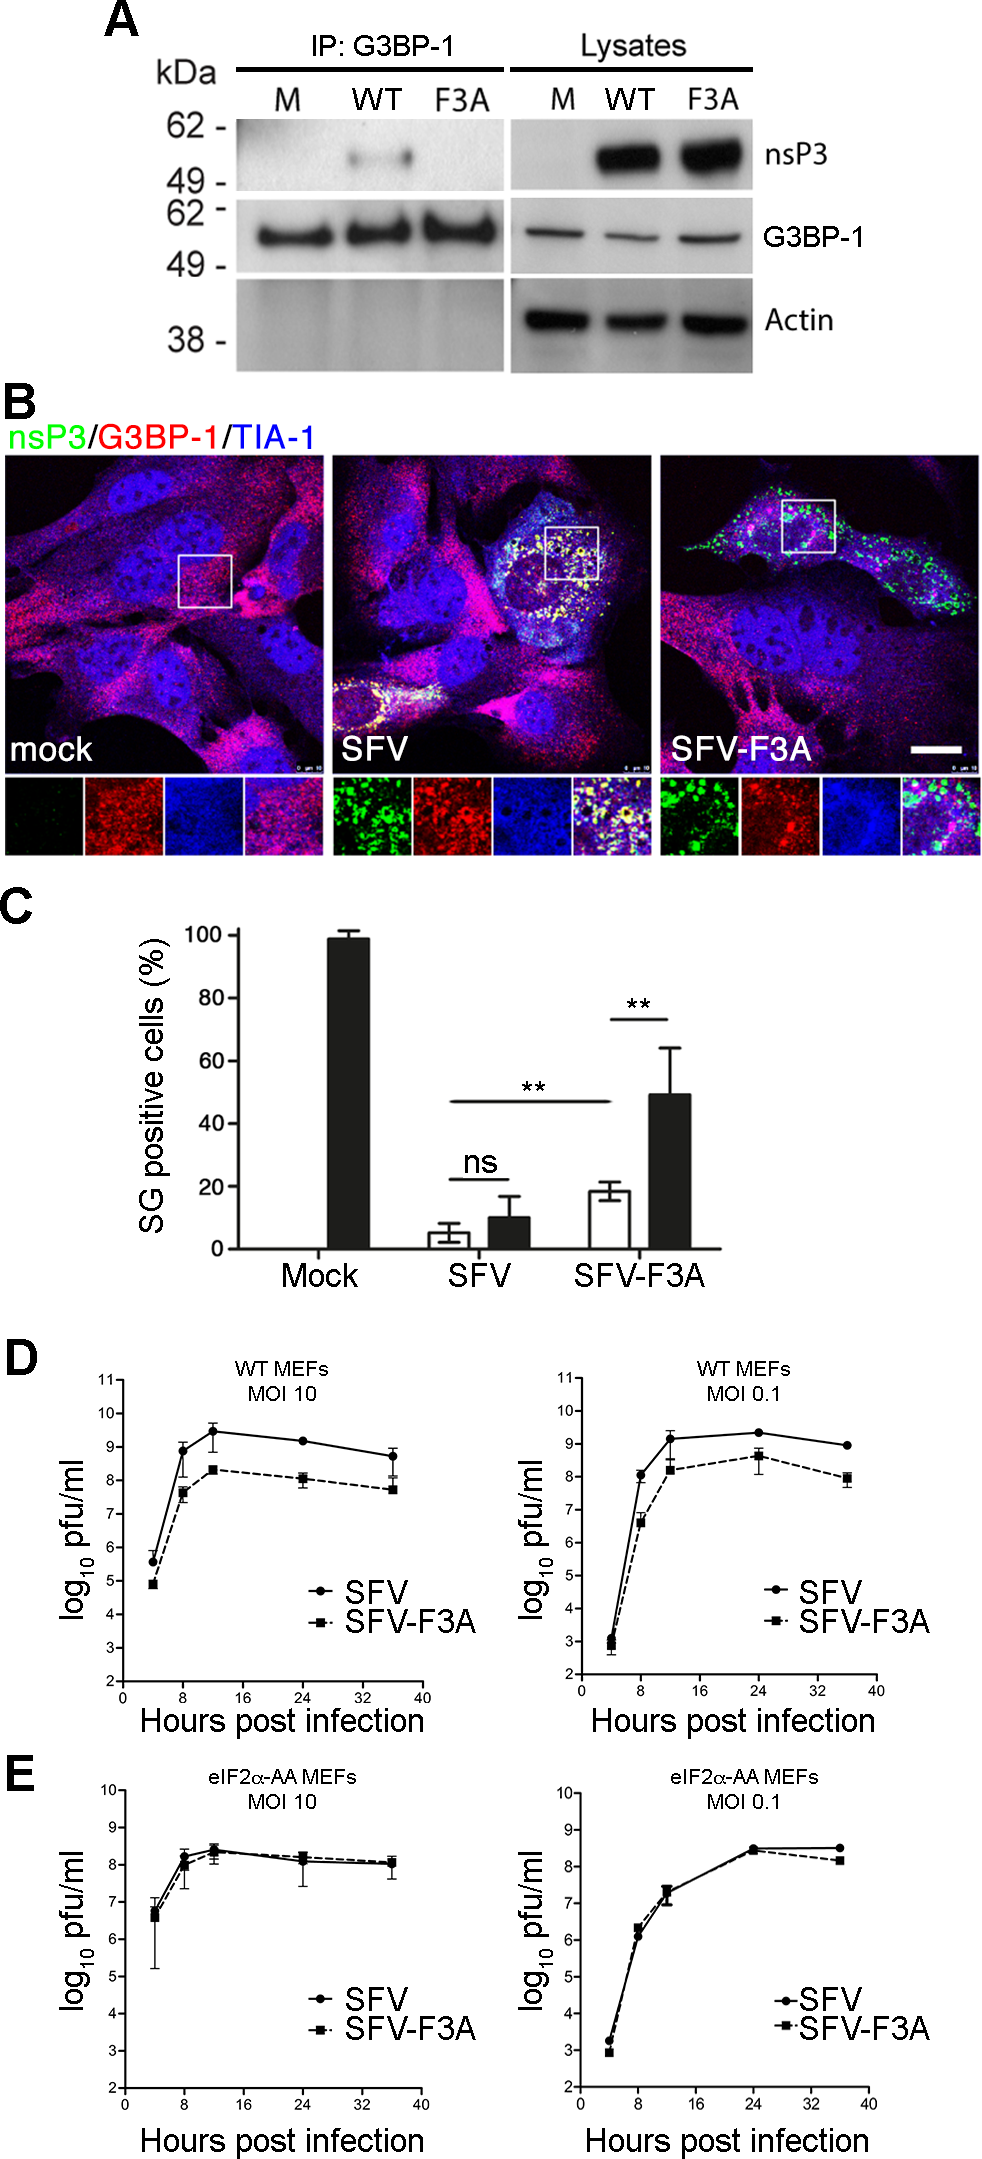 SFV-F3A does not sequester G3BP, induces a stronger SG response and is attenuated <i>in vitro</i>.